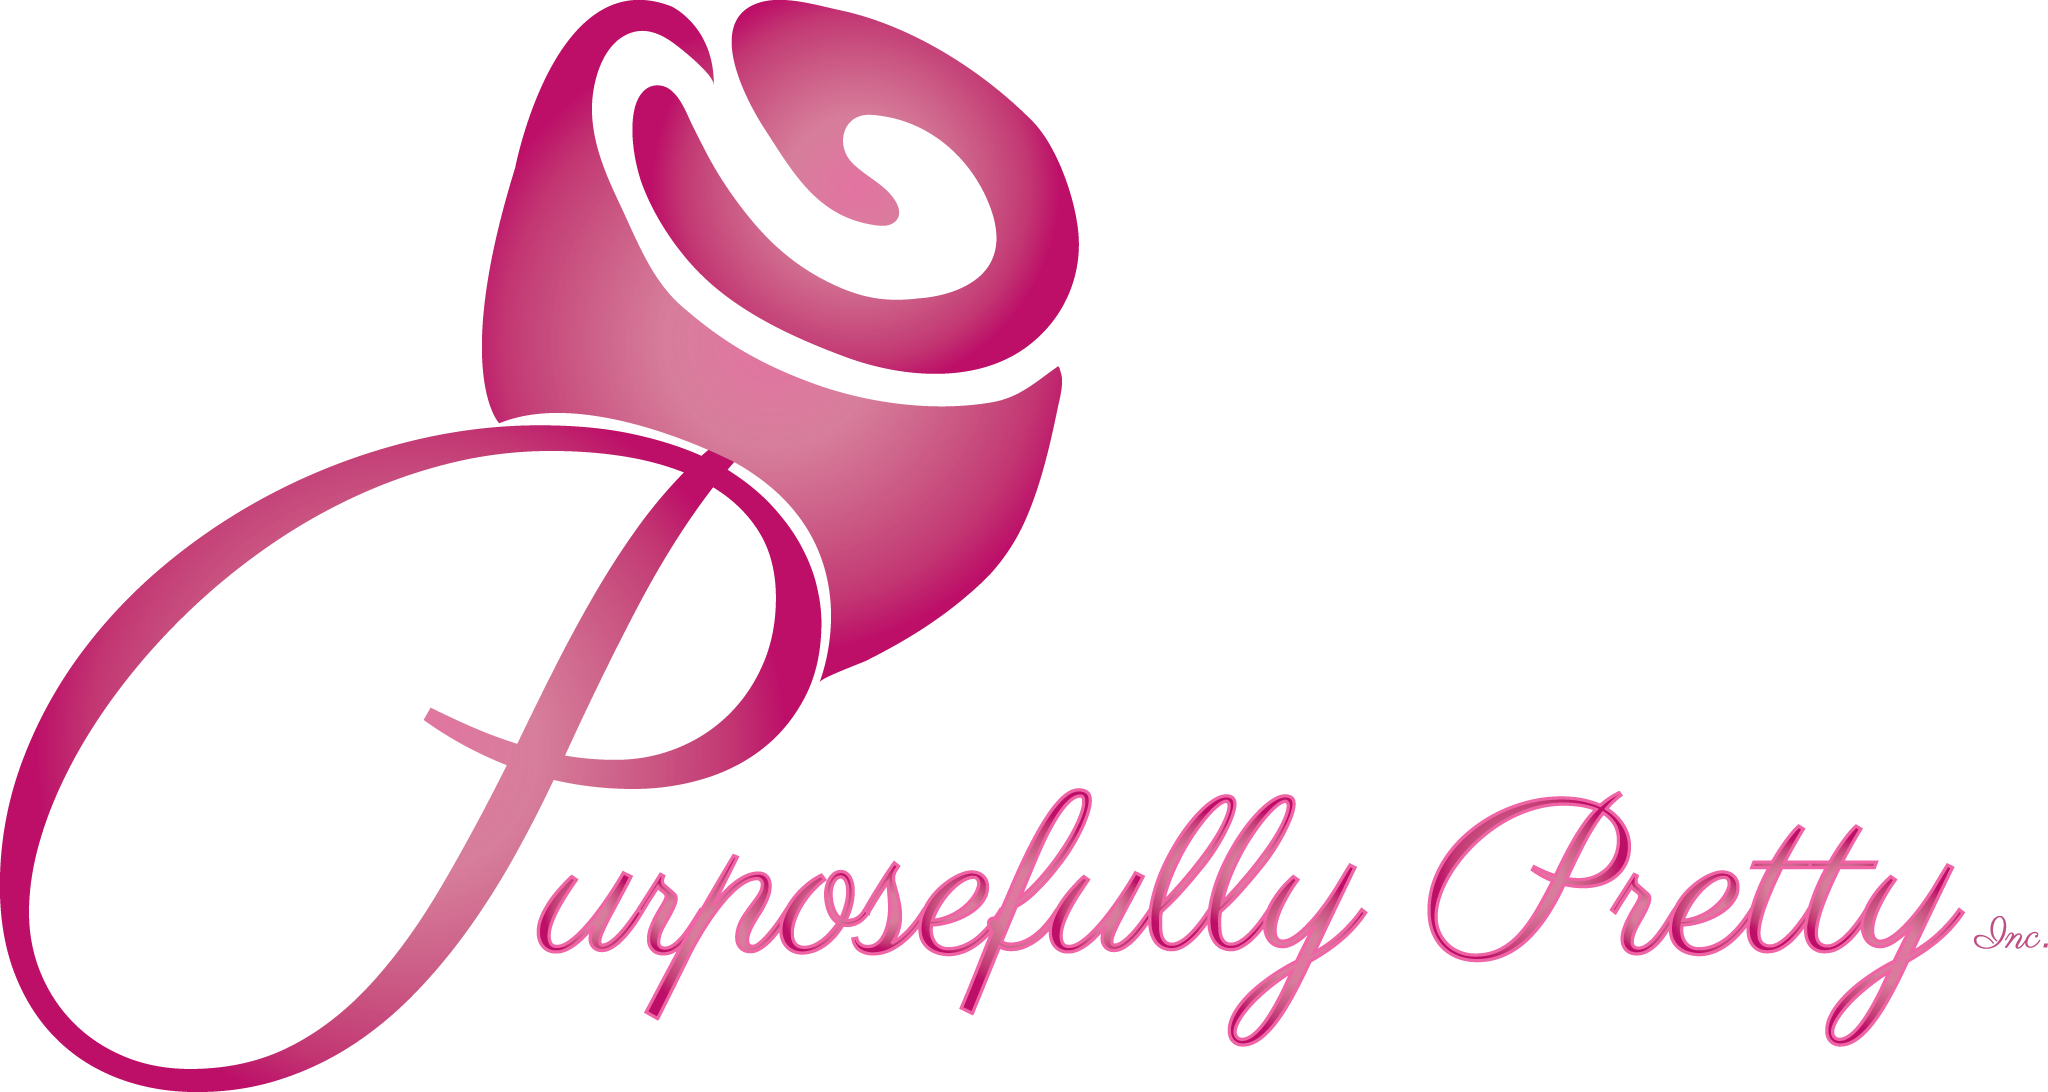 Purposefully Pretty Inc. - Non-profit organization seeking to outreach, teach and inspire young women